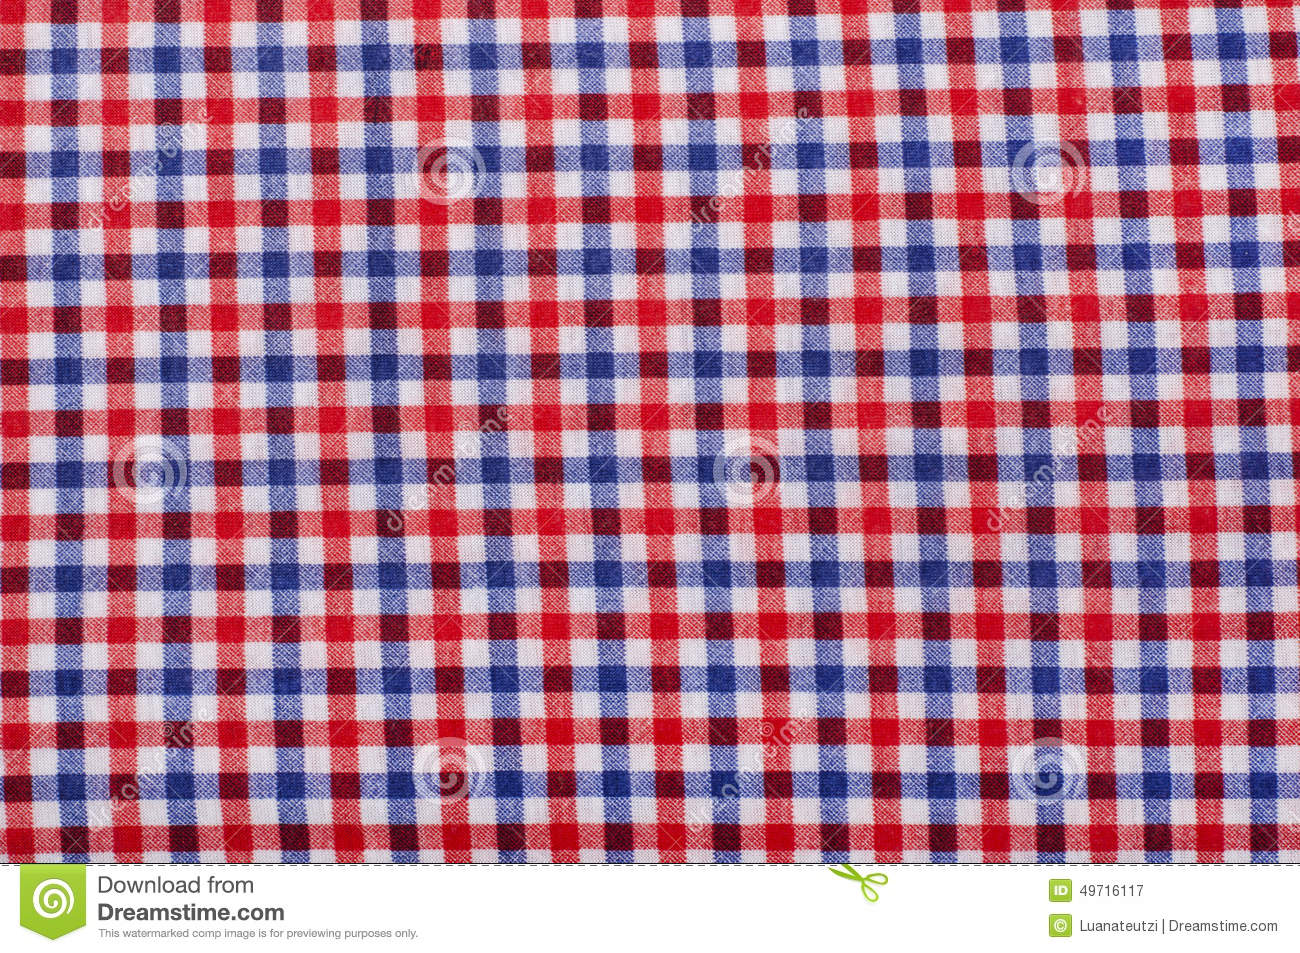 Close Up On Checkered Tablecloth Fabric.